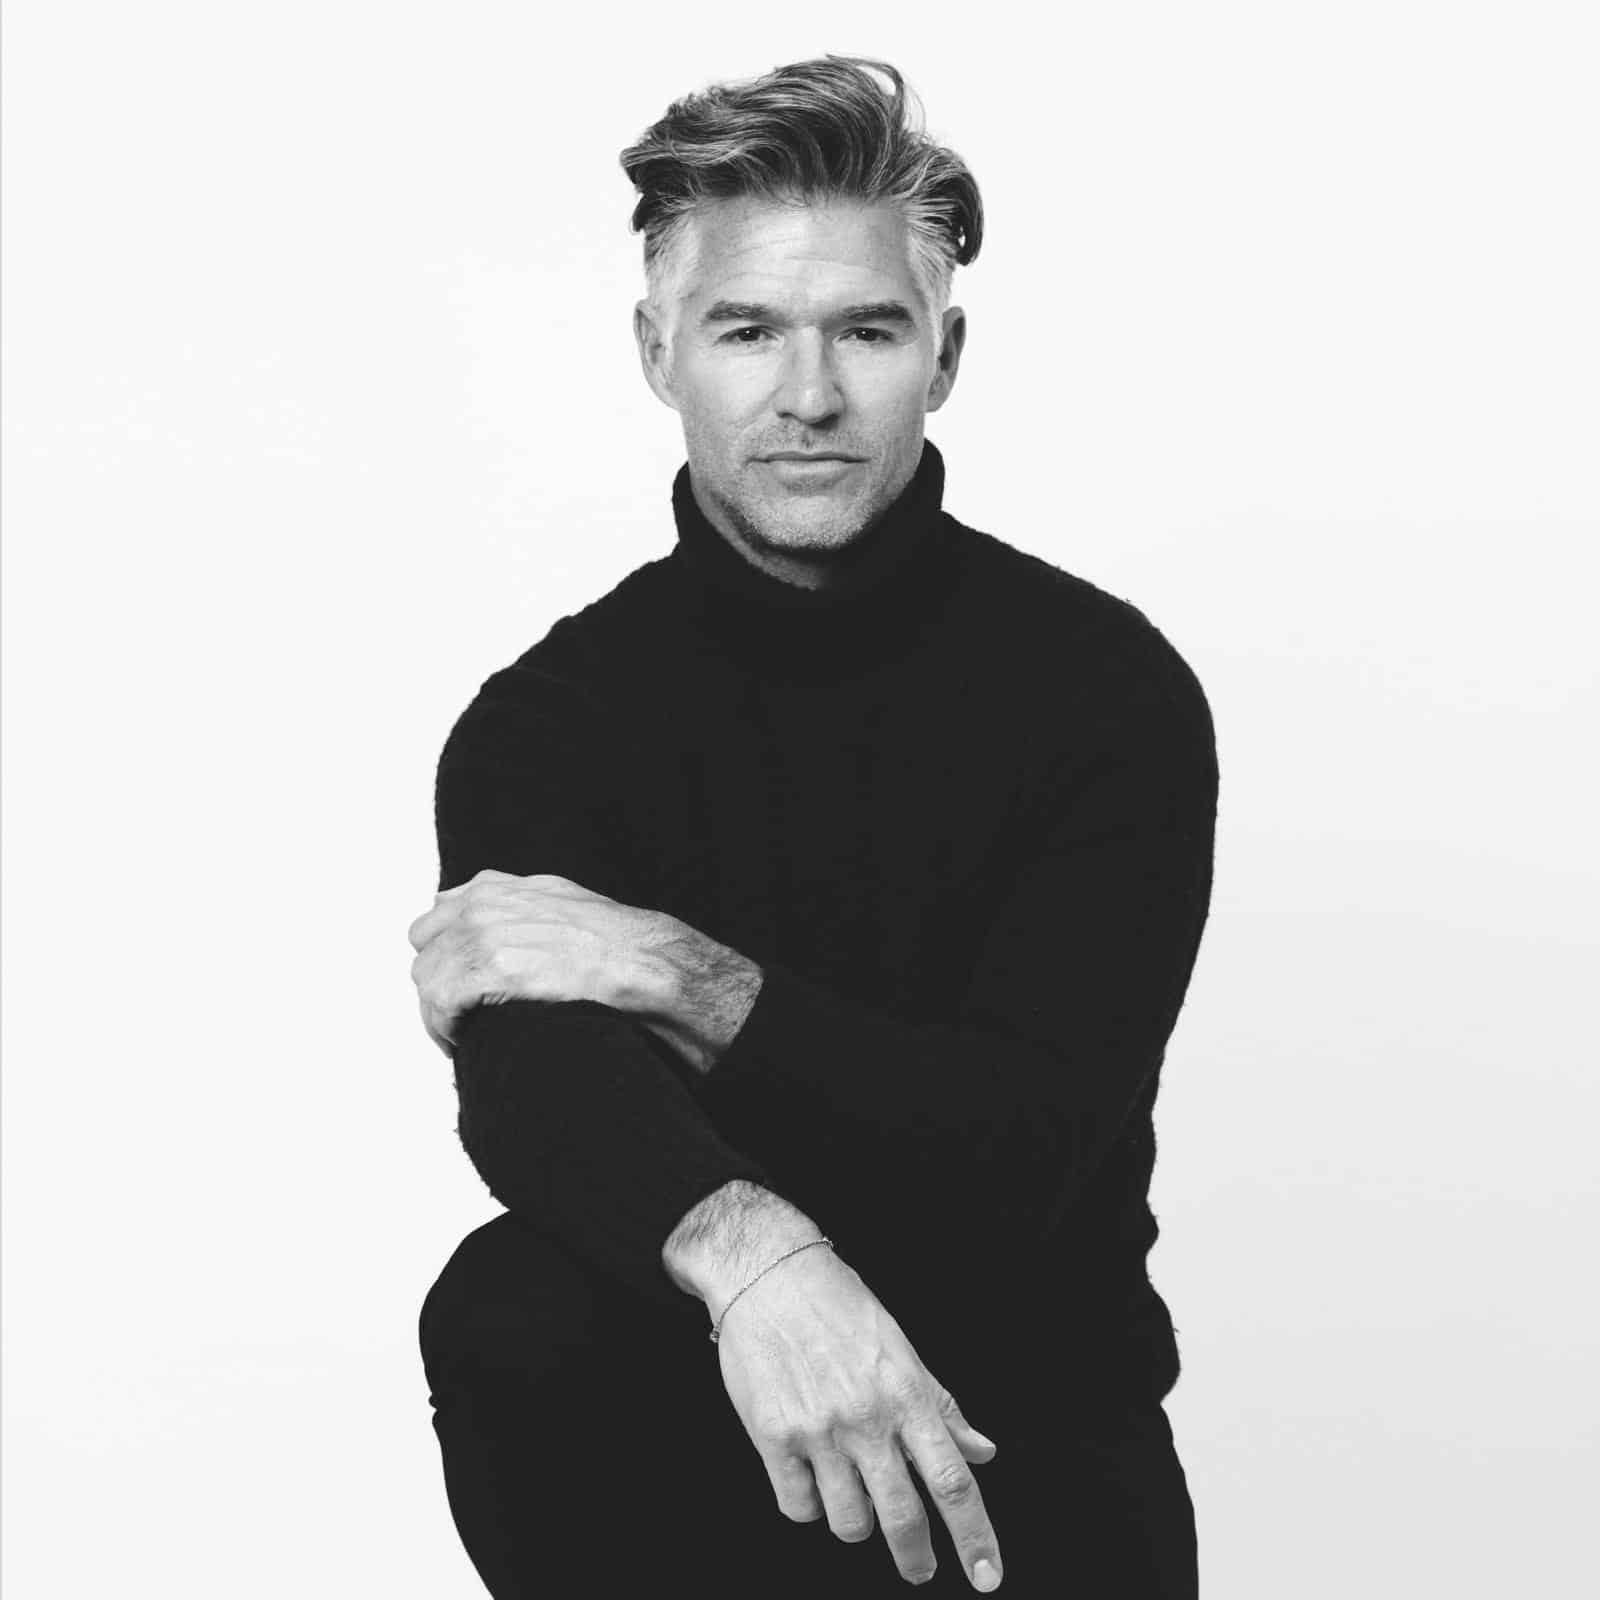 Eric Rutherford's Insta Story